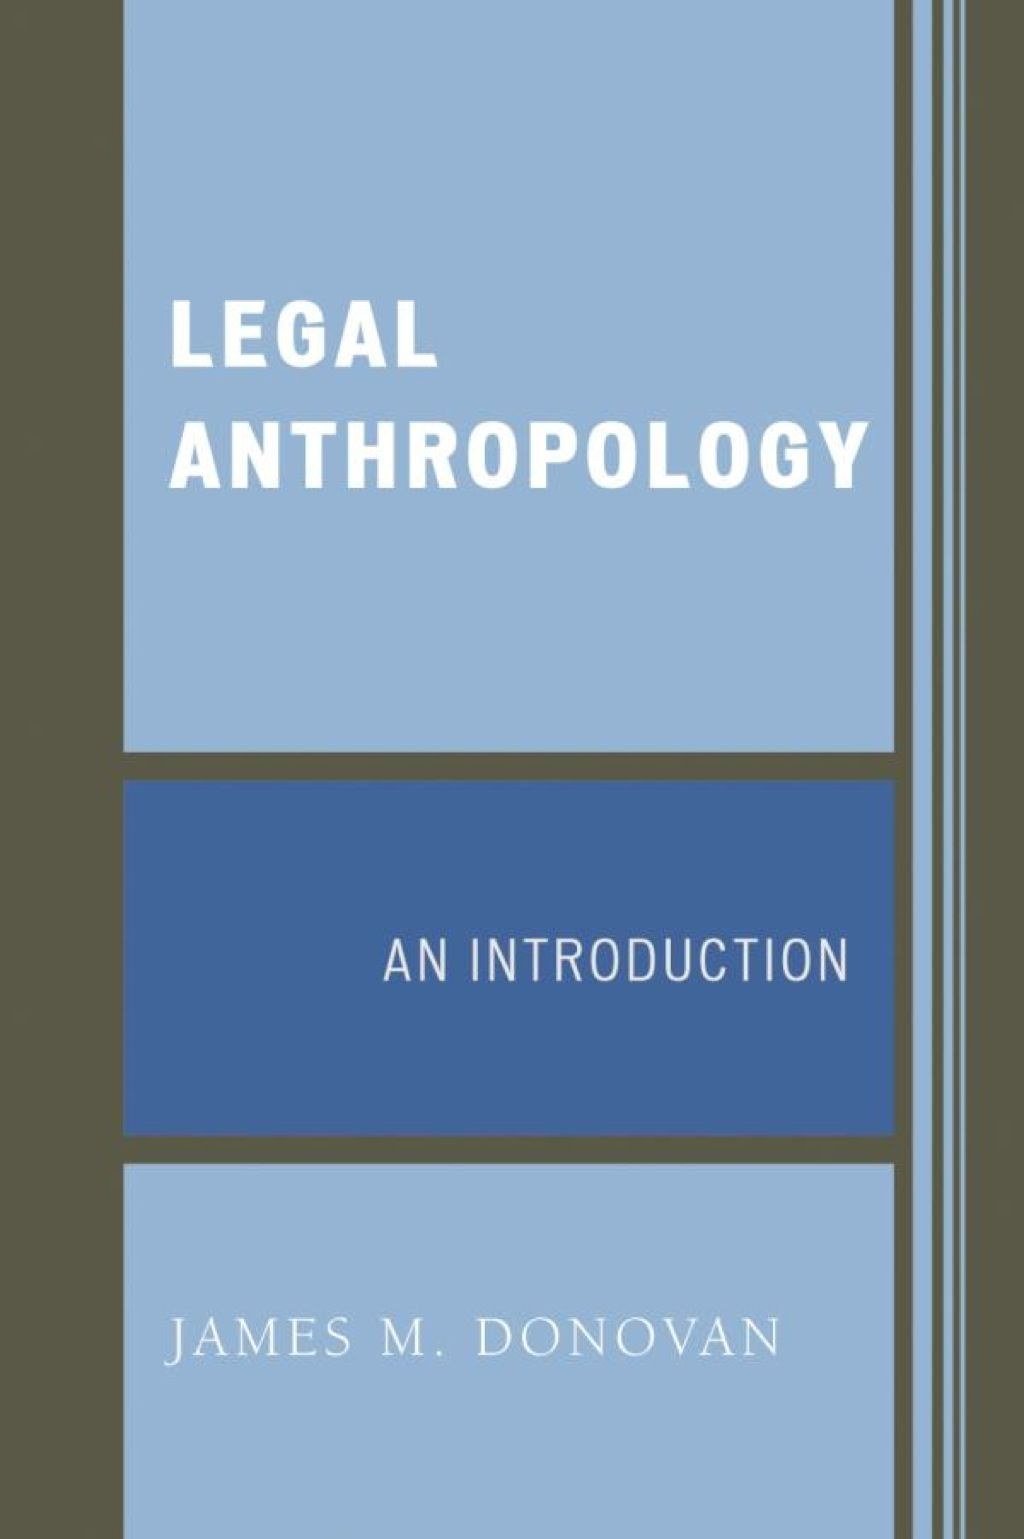 Legal Anthropology Ebook In